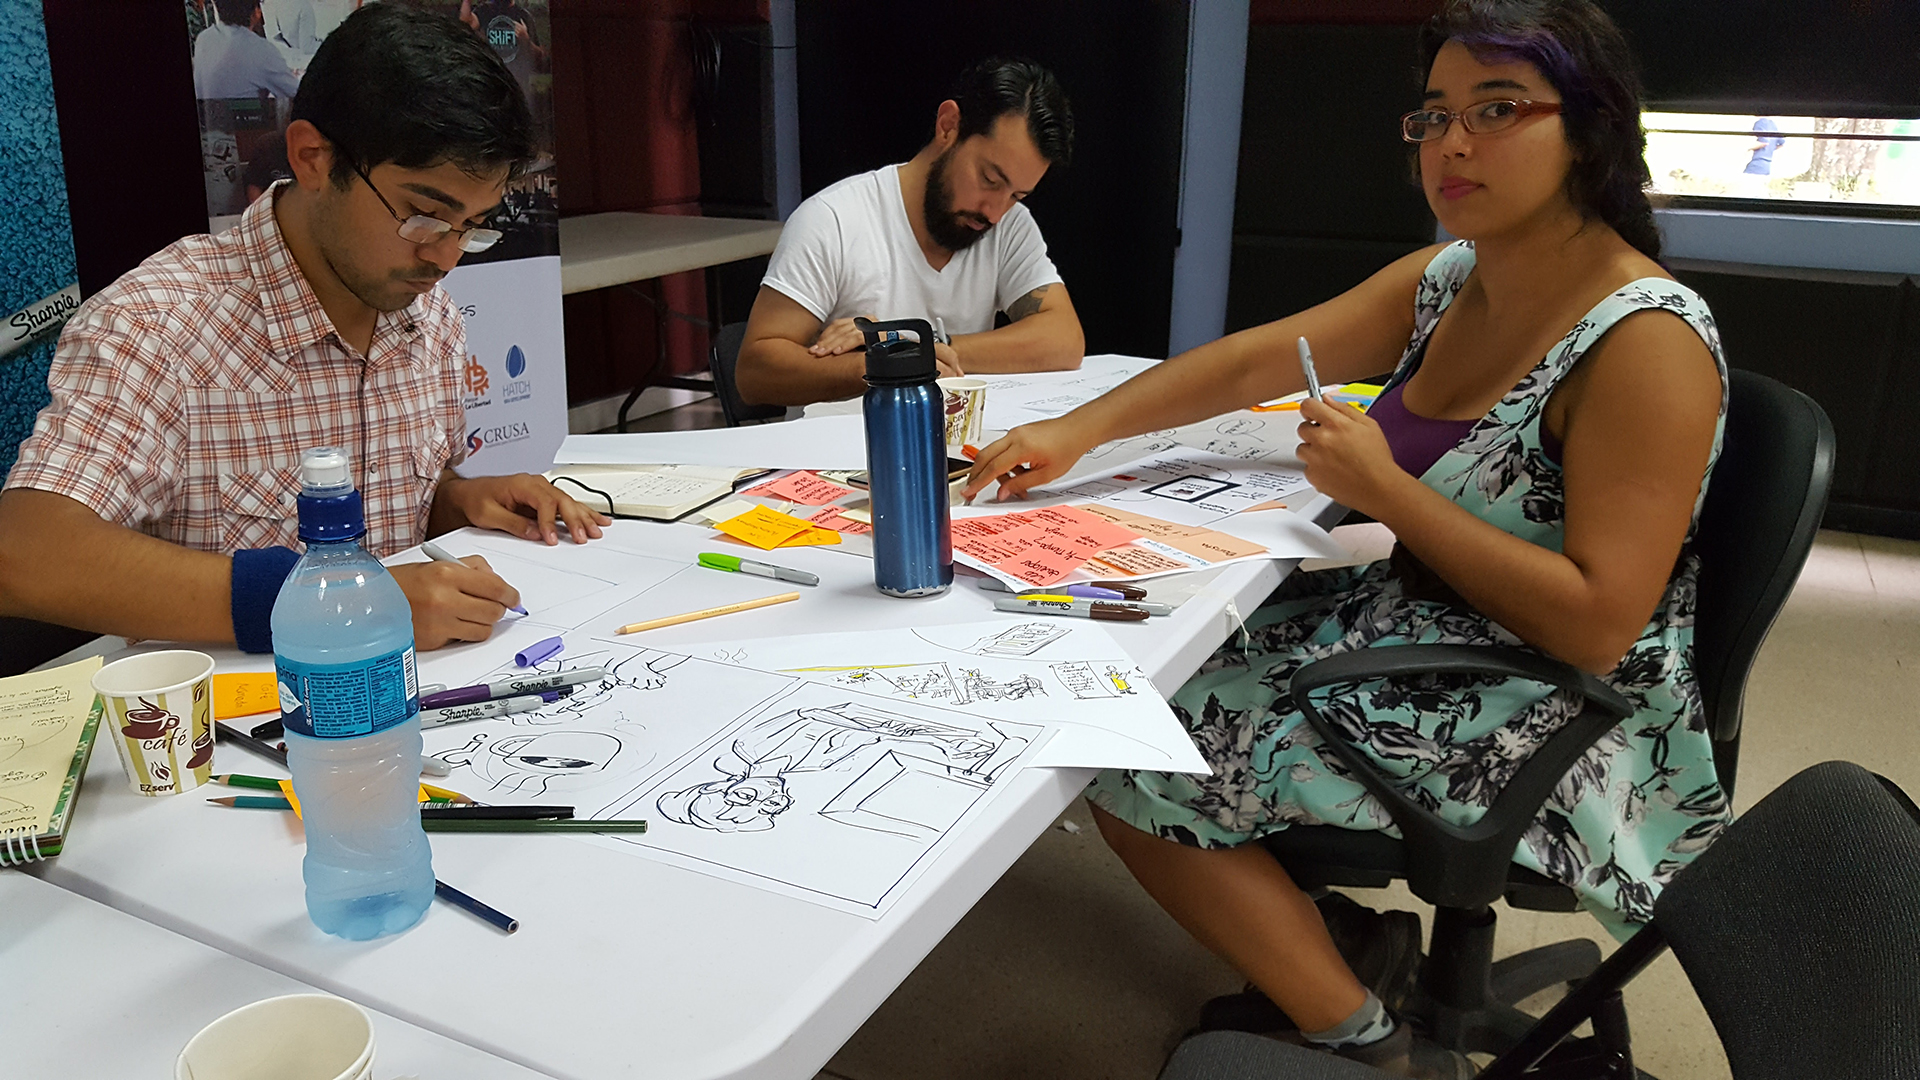 """Partner: Hatch/Sketching Lab Date & Location: October 26-28, 2017 / La Libertad Park, San Jose, Costa Rica Participants: Around 20 multidisciplinary group of college students in various design fields / professional designers: industrial, graphic, architecture/ educators/government workers / social workers __ ages ranged from early 20s-60s Overview: Partnering with Hatch/Sketching Lab in San Jose Costa Rica, Aether co-hosted a 3-day Lab that focused on visual communication and the creative thinking process. The intent was to help take an idea to reality following innovative methodologies in a very hands-on, activity-driven approach. The Lab's primary objective was to promote and foster entrepreneurship and creativity of the participants to develop and create successful businesses from innovative ideas. Targeted for the entrepreneurs, business managers, designers, architects, craftsmen, creatives, students and professionals in business and all those interested in learning new ways to communicate their innovative ideas quickly and effectively. Topic: The Story of Coffee Kickoff: Sketch Aerobics: basic exercises. Lose fear and forget frustrations, learn to communicate your innovative concepts with visualization techniques. (exercises and sketching with music) Presentation: (José Gamboa) Basic drawing techniques, Mind Mapping techniques (organization of concepts and ideas using word association strategies). Design process: problem, research, concept, and solution. How to incorporate """"emotional design"""" into your proposal or business. Knowing ourselves better, the participants will form teams to perform basic exercises. Each group will have the opportunity to develop a business idea, in digital or a physical concept Presentation: (Owen Foster) Following the """"Lean Startup"""" methodology, """"Pencil to prototype"""": a practical workshop that visualizes the complexity of the creative process, divides it into smaller, more manageable tasks and allows participants to accept the failur"""